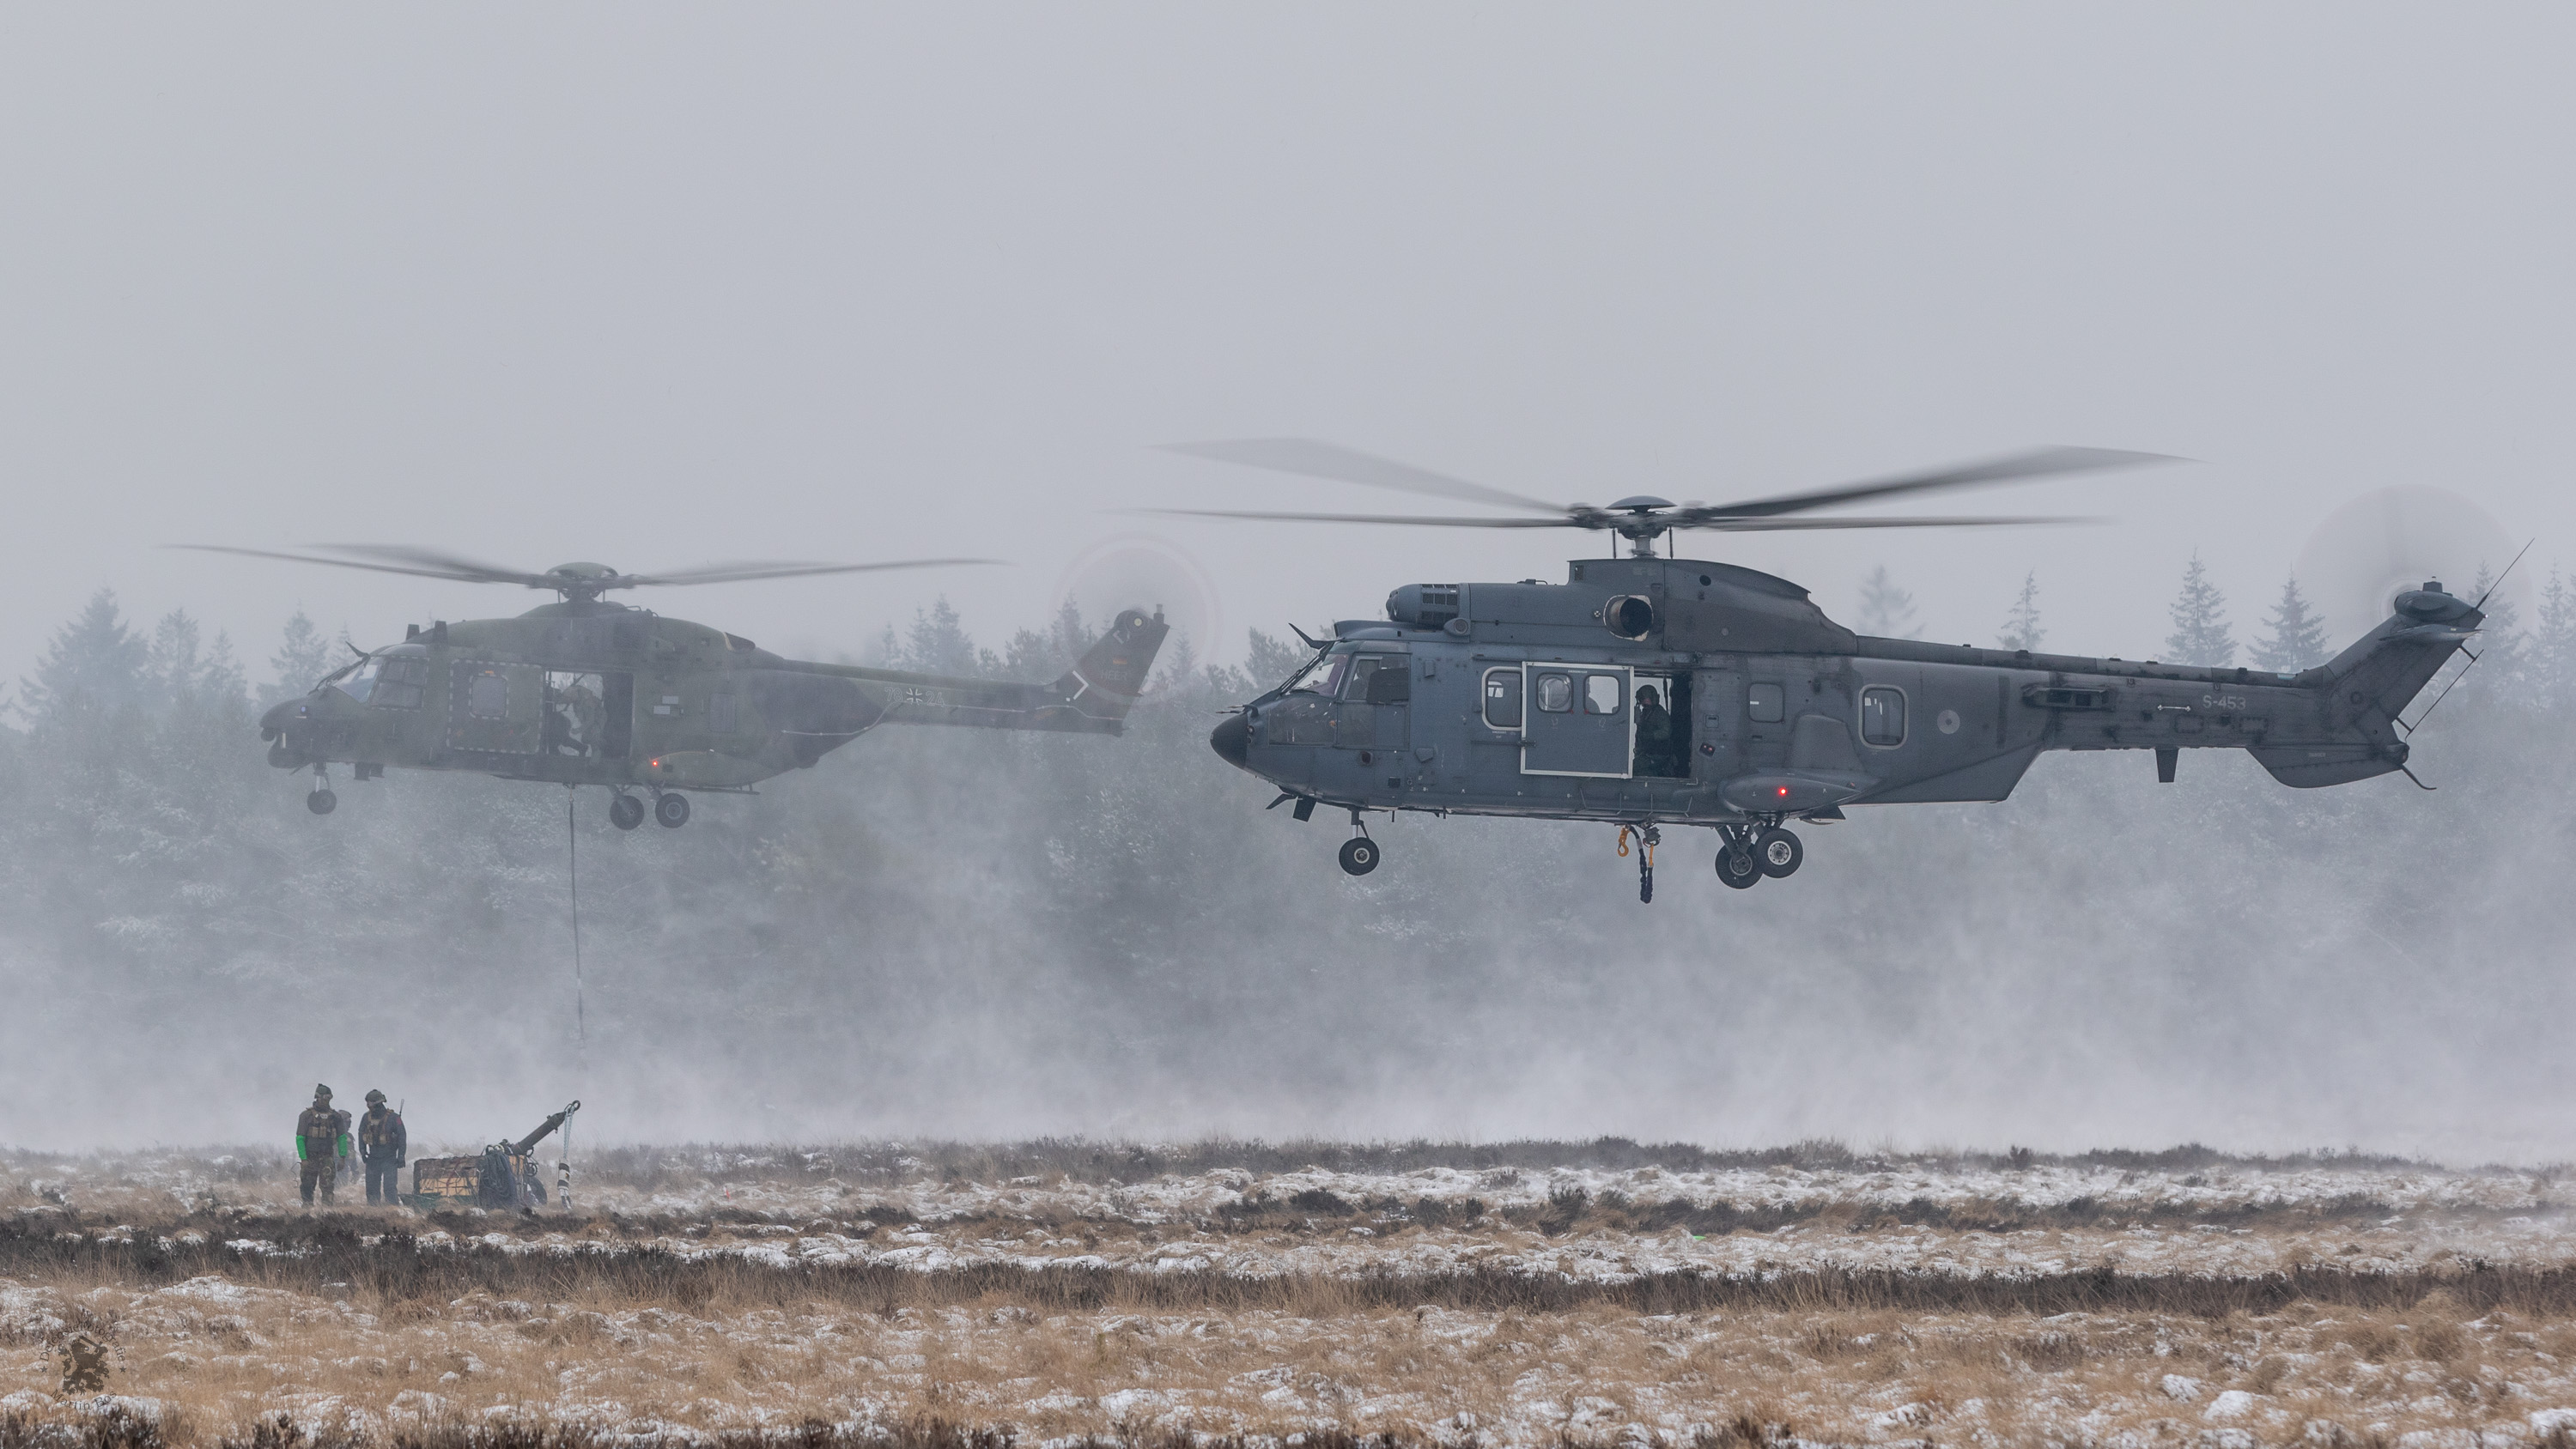 Cougar en NH90 met slingload